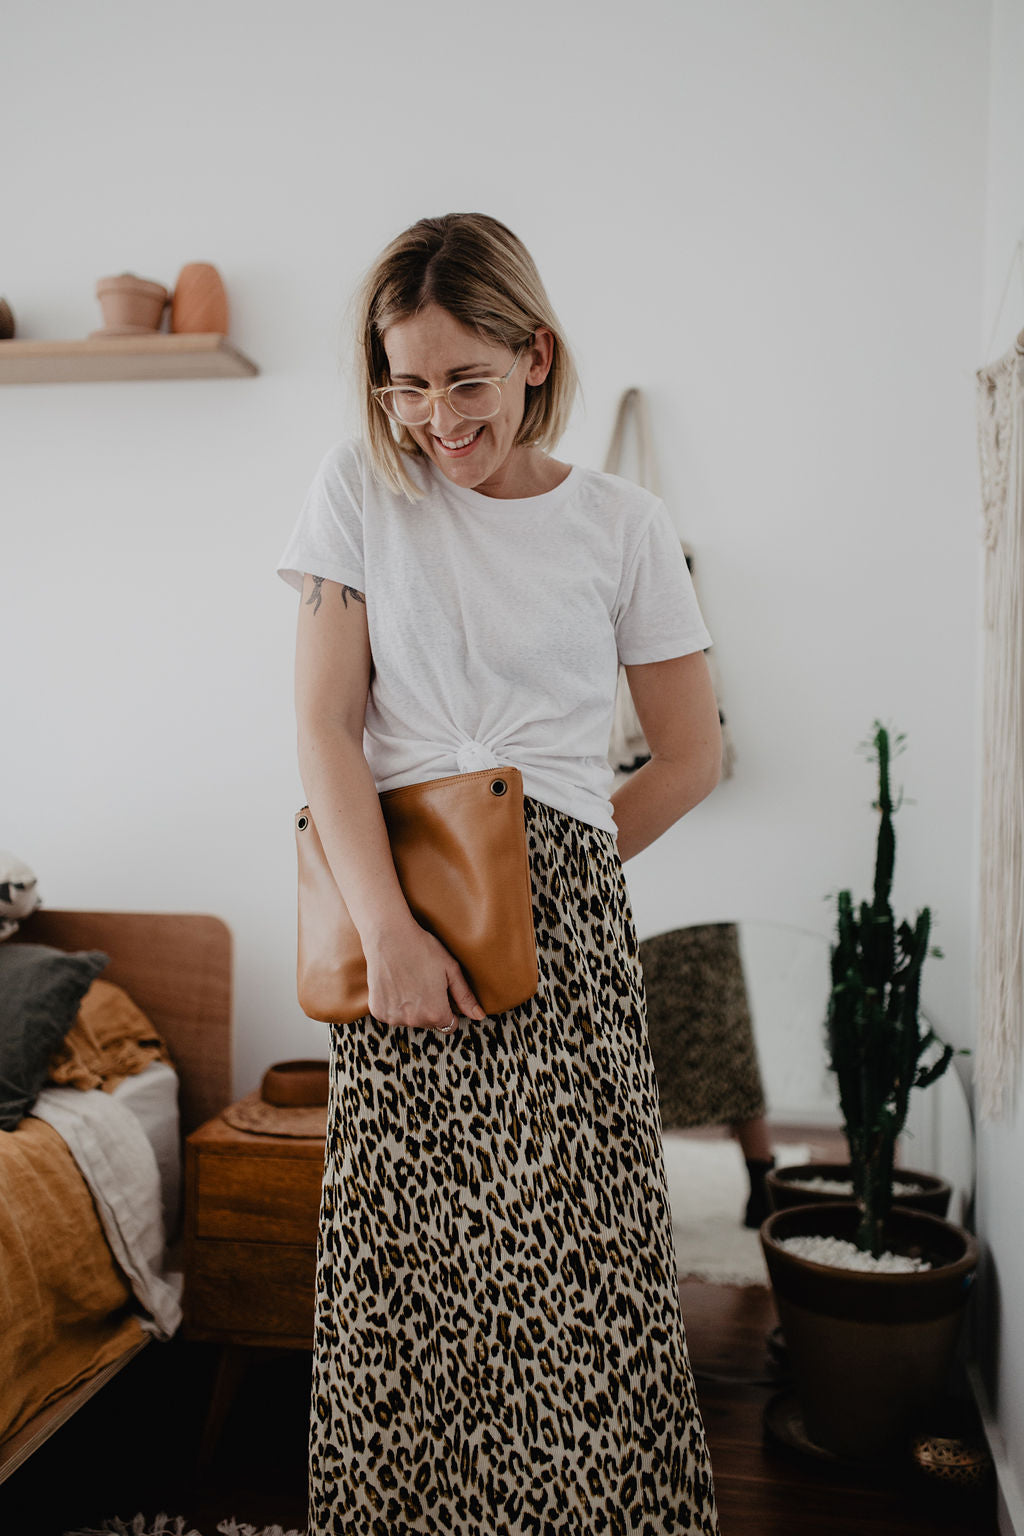 Behind The Bag: Holii Carmody, Photographer